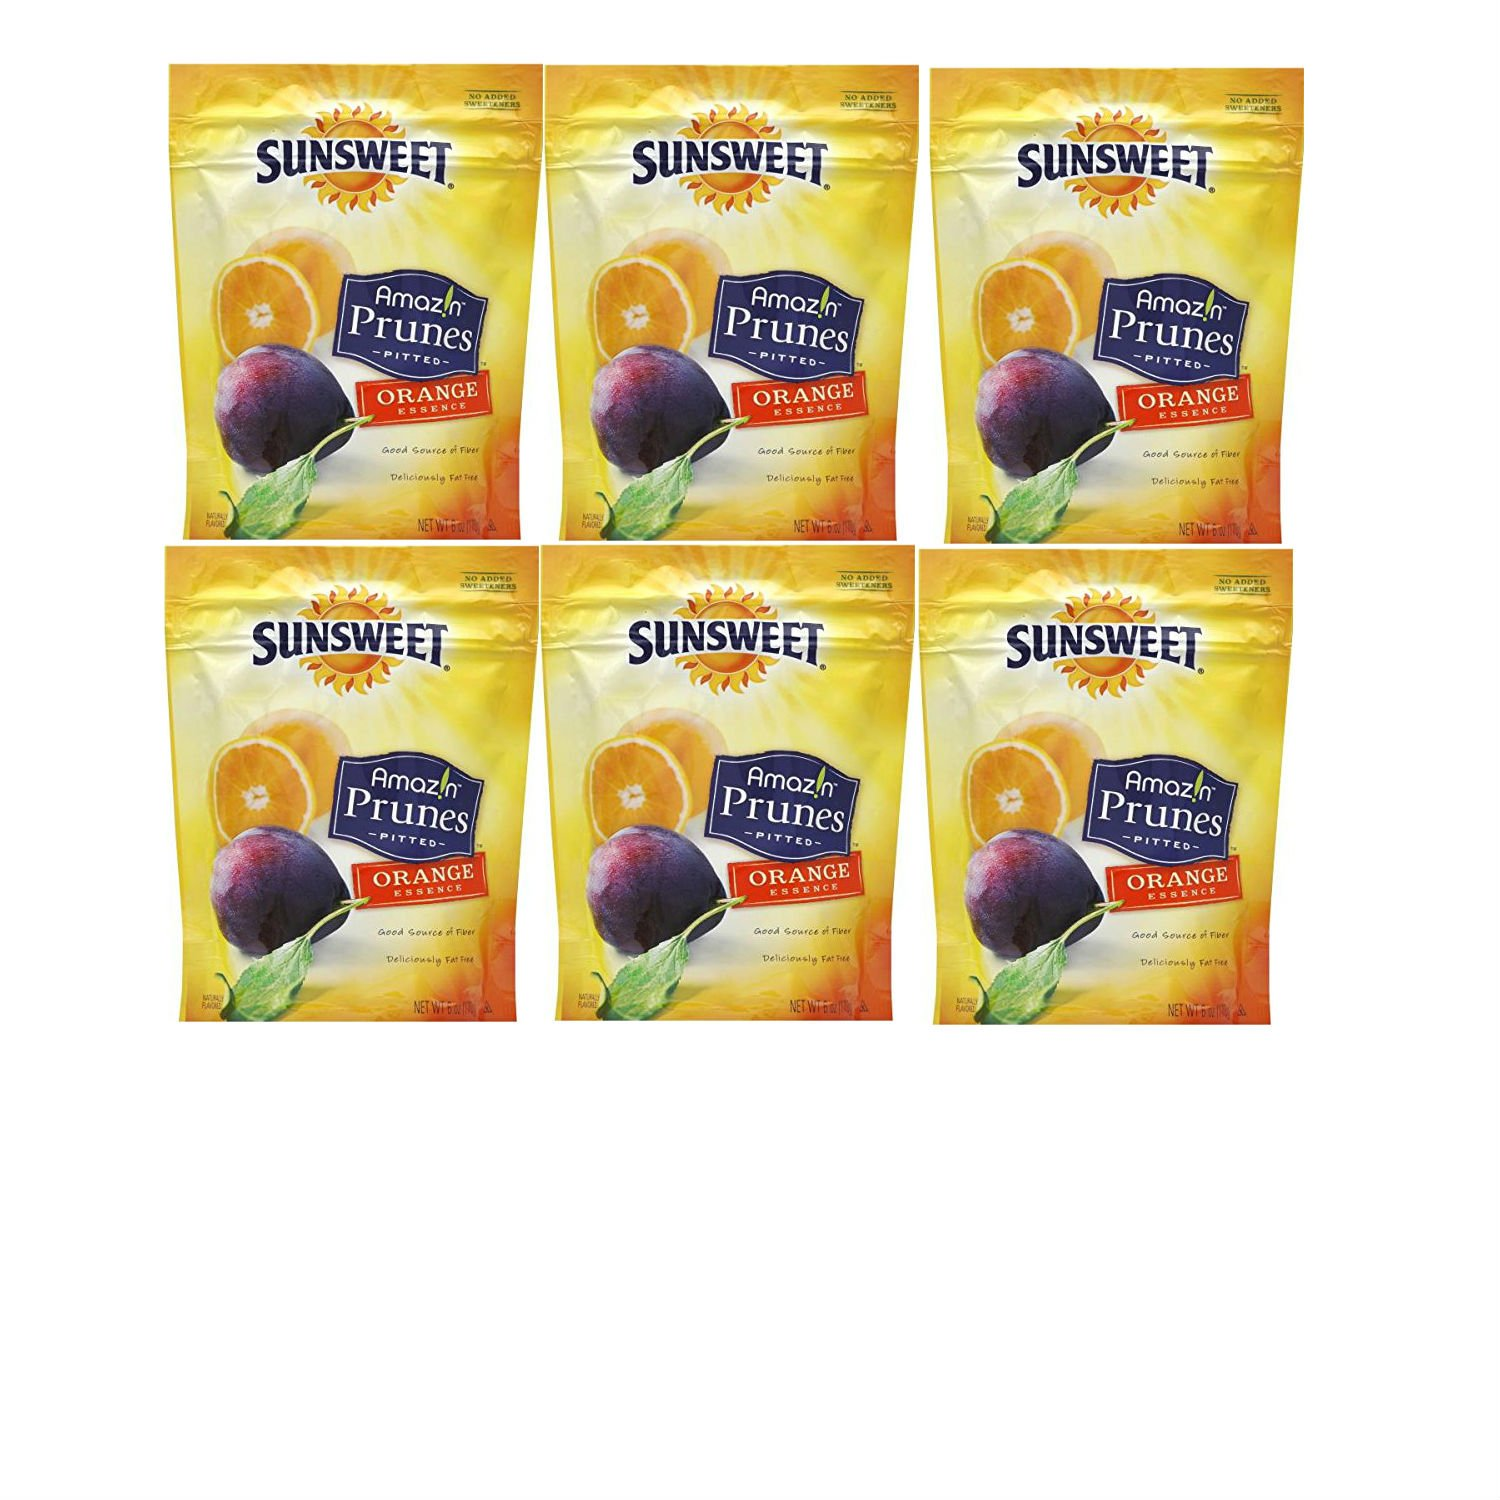 Sunsweet Amaz!n Prunes, Pitted, Orange Essence (Pack of 6). Convenient One Stop Shopping for These Amazing Orange Flavored Prunes.